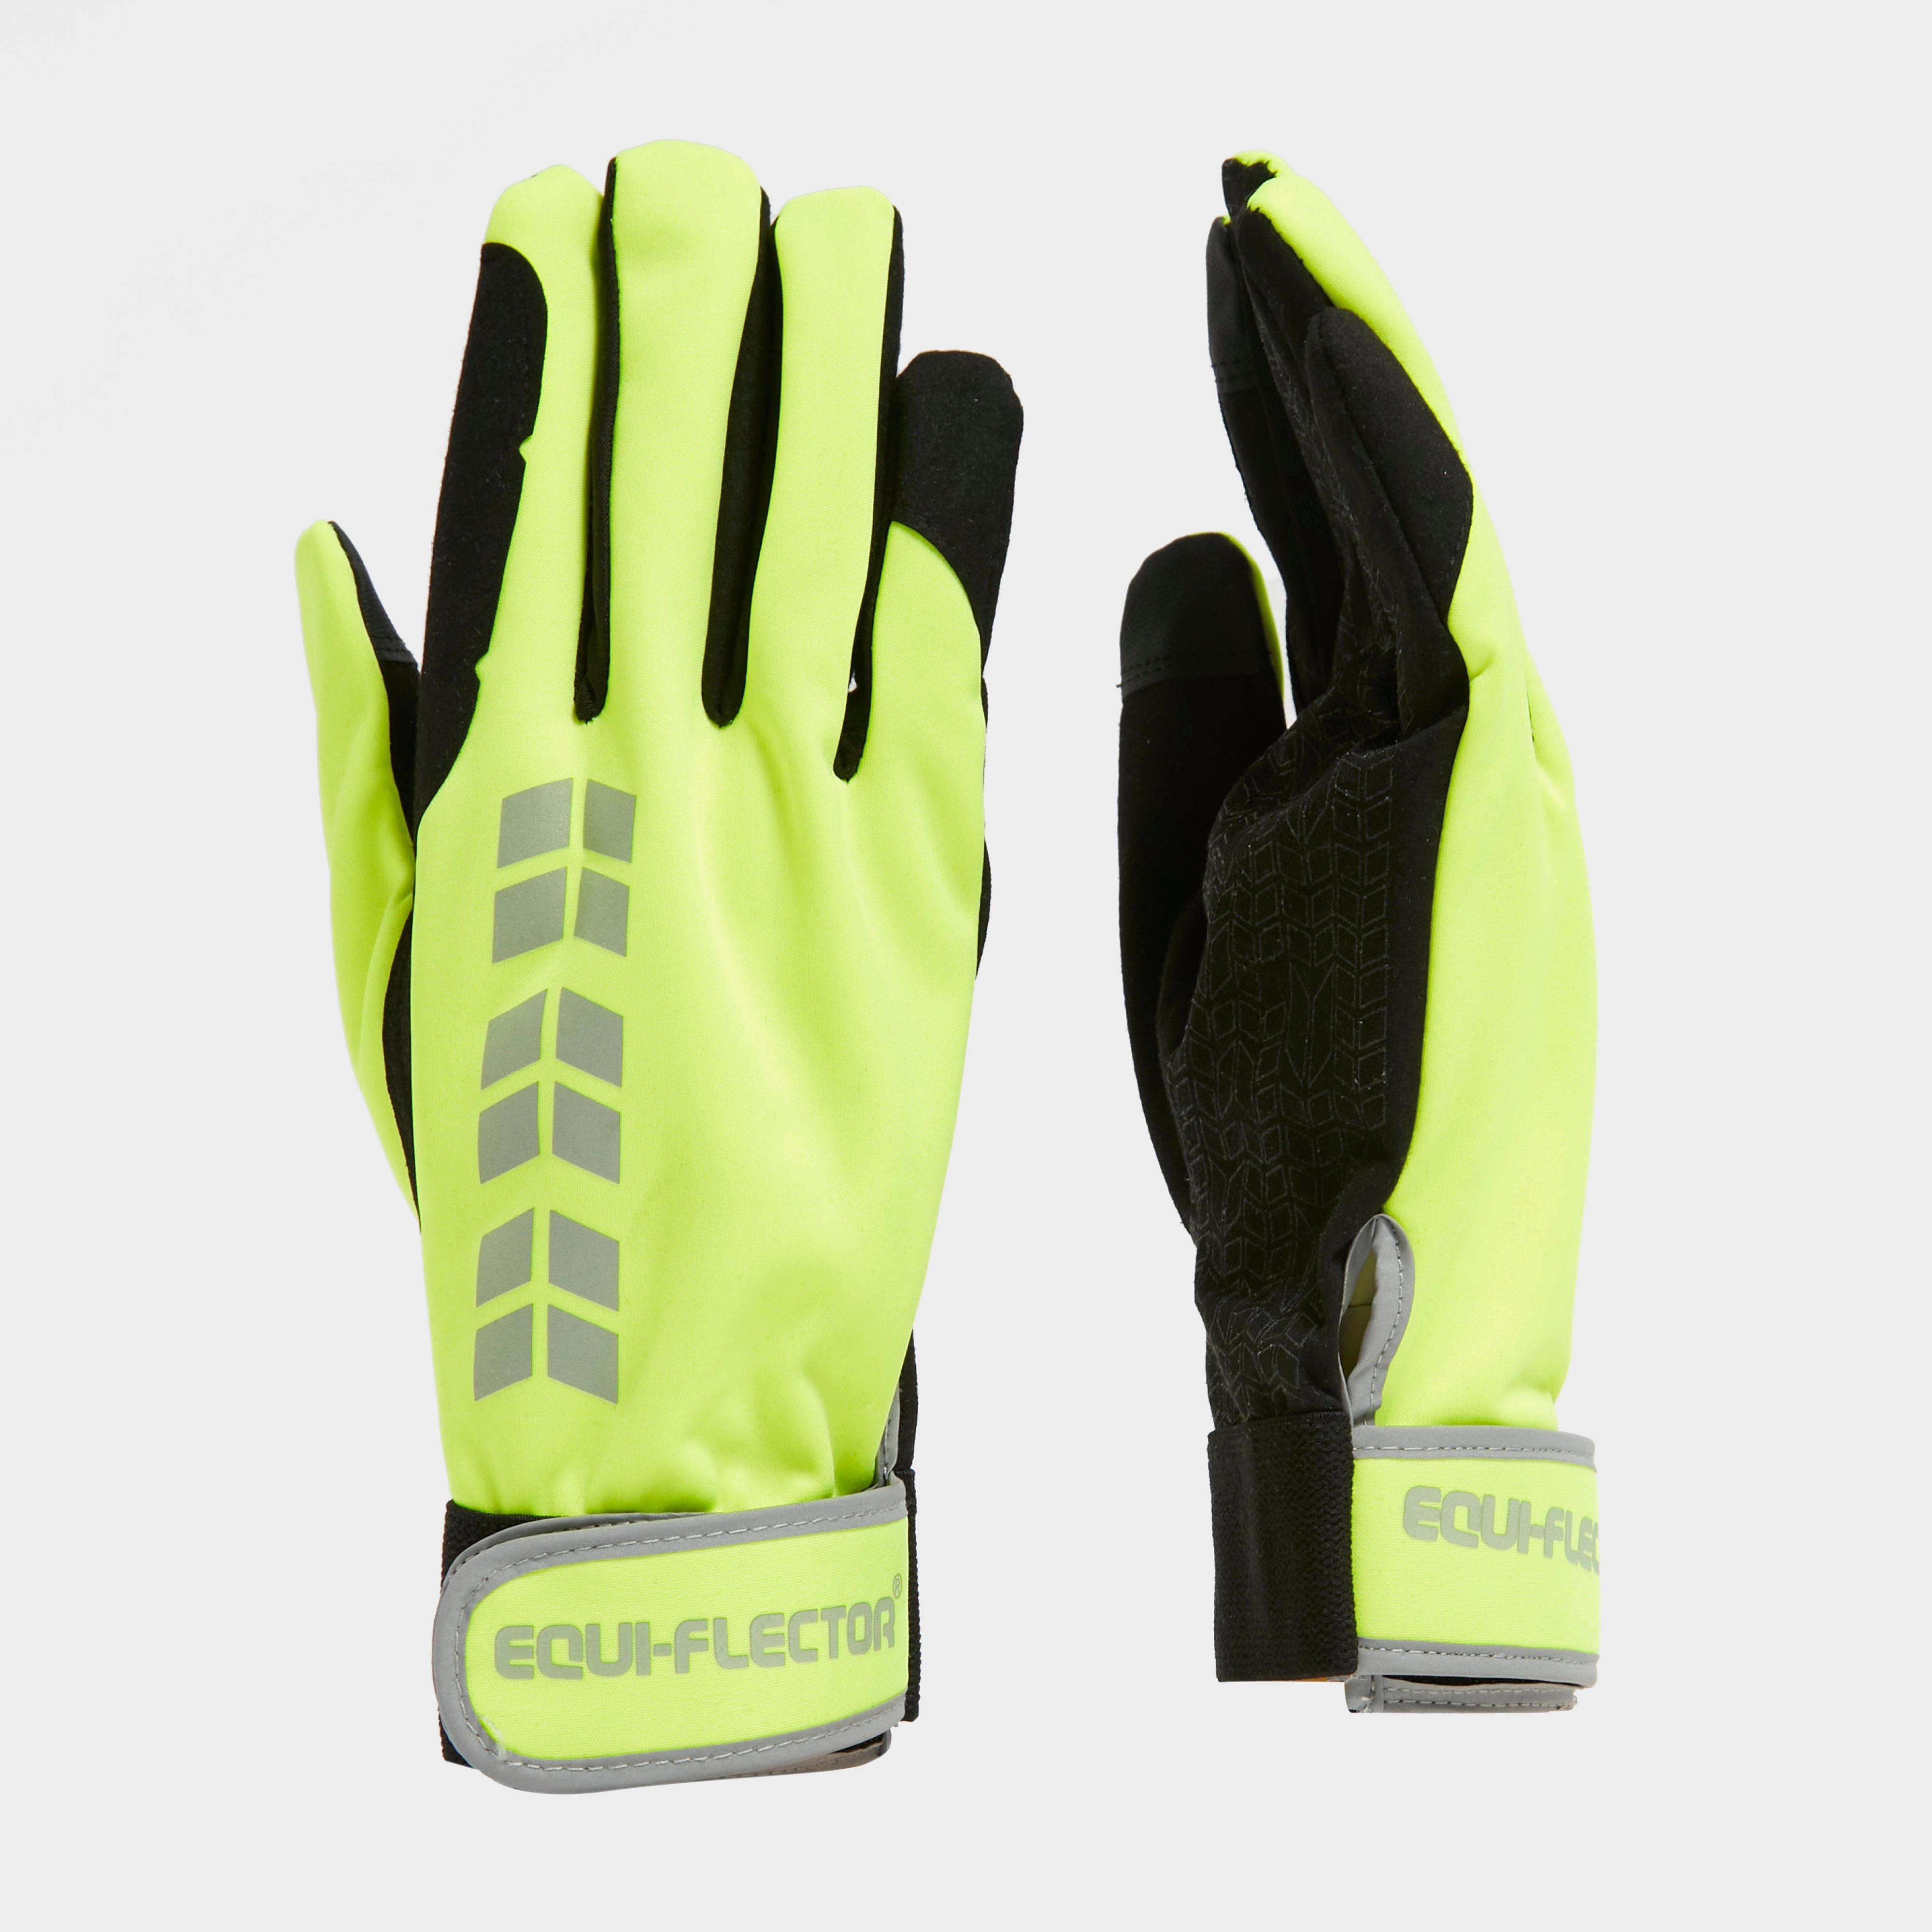 Image of Shires Equi Flector Riding Glove - Yellow/Glove, Yellow/GLOVE